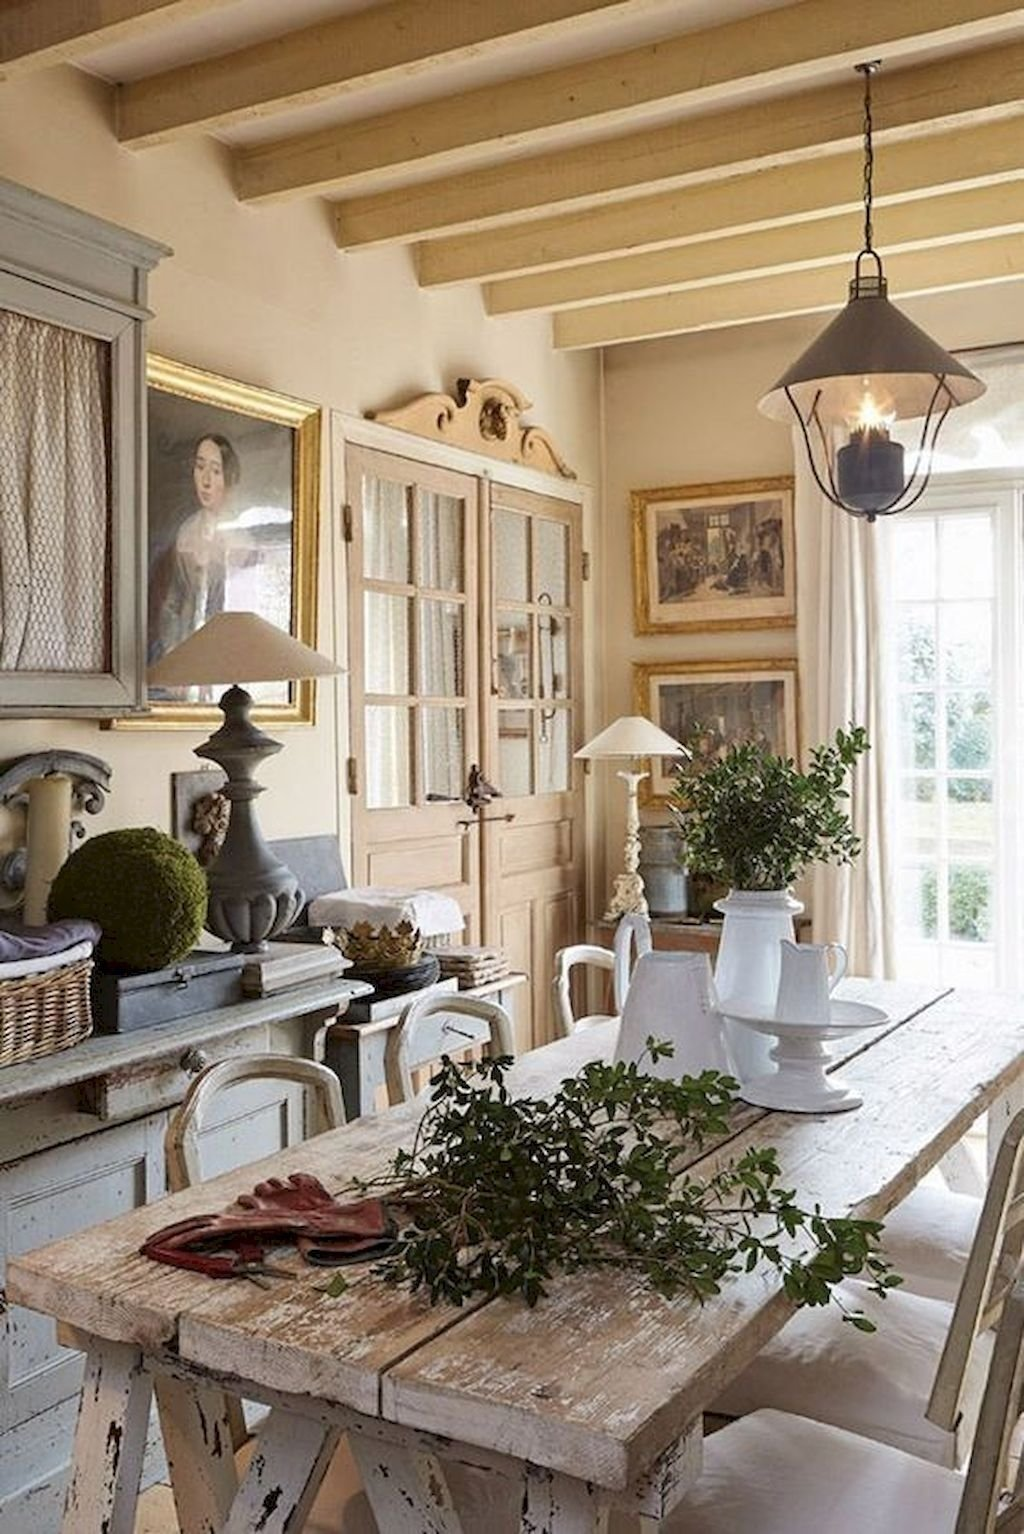 10 Perfect French Country Dining Room Ideas 40 vintage french country living room ideas french country dining 2021